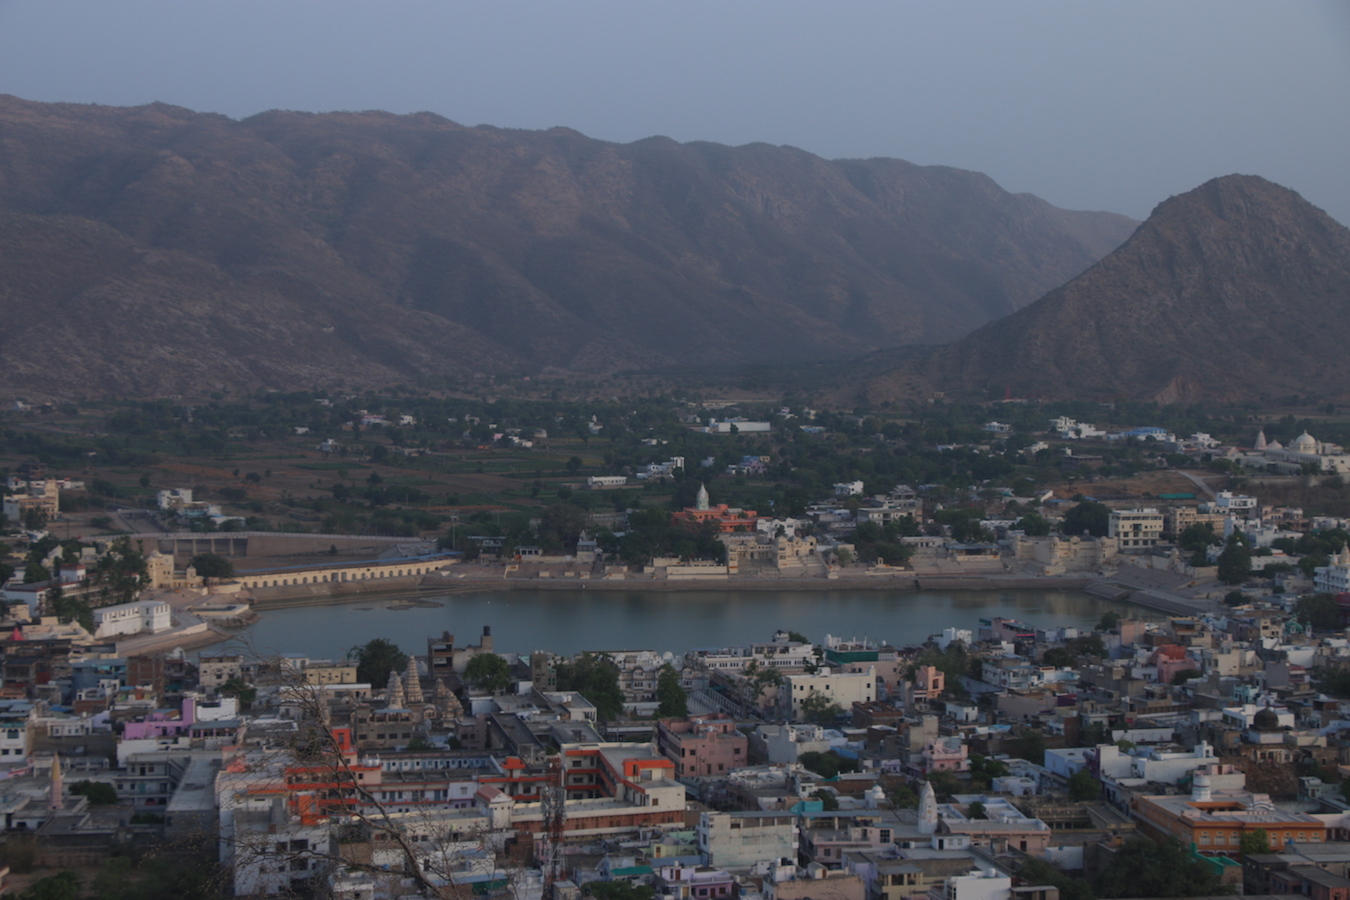 places to visit in Rajasthan, Pushkar hippie town